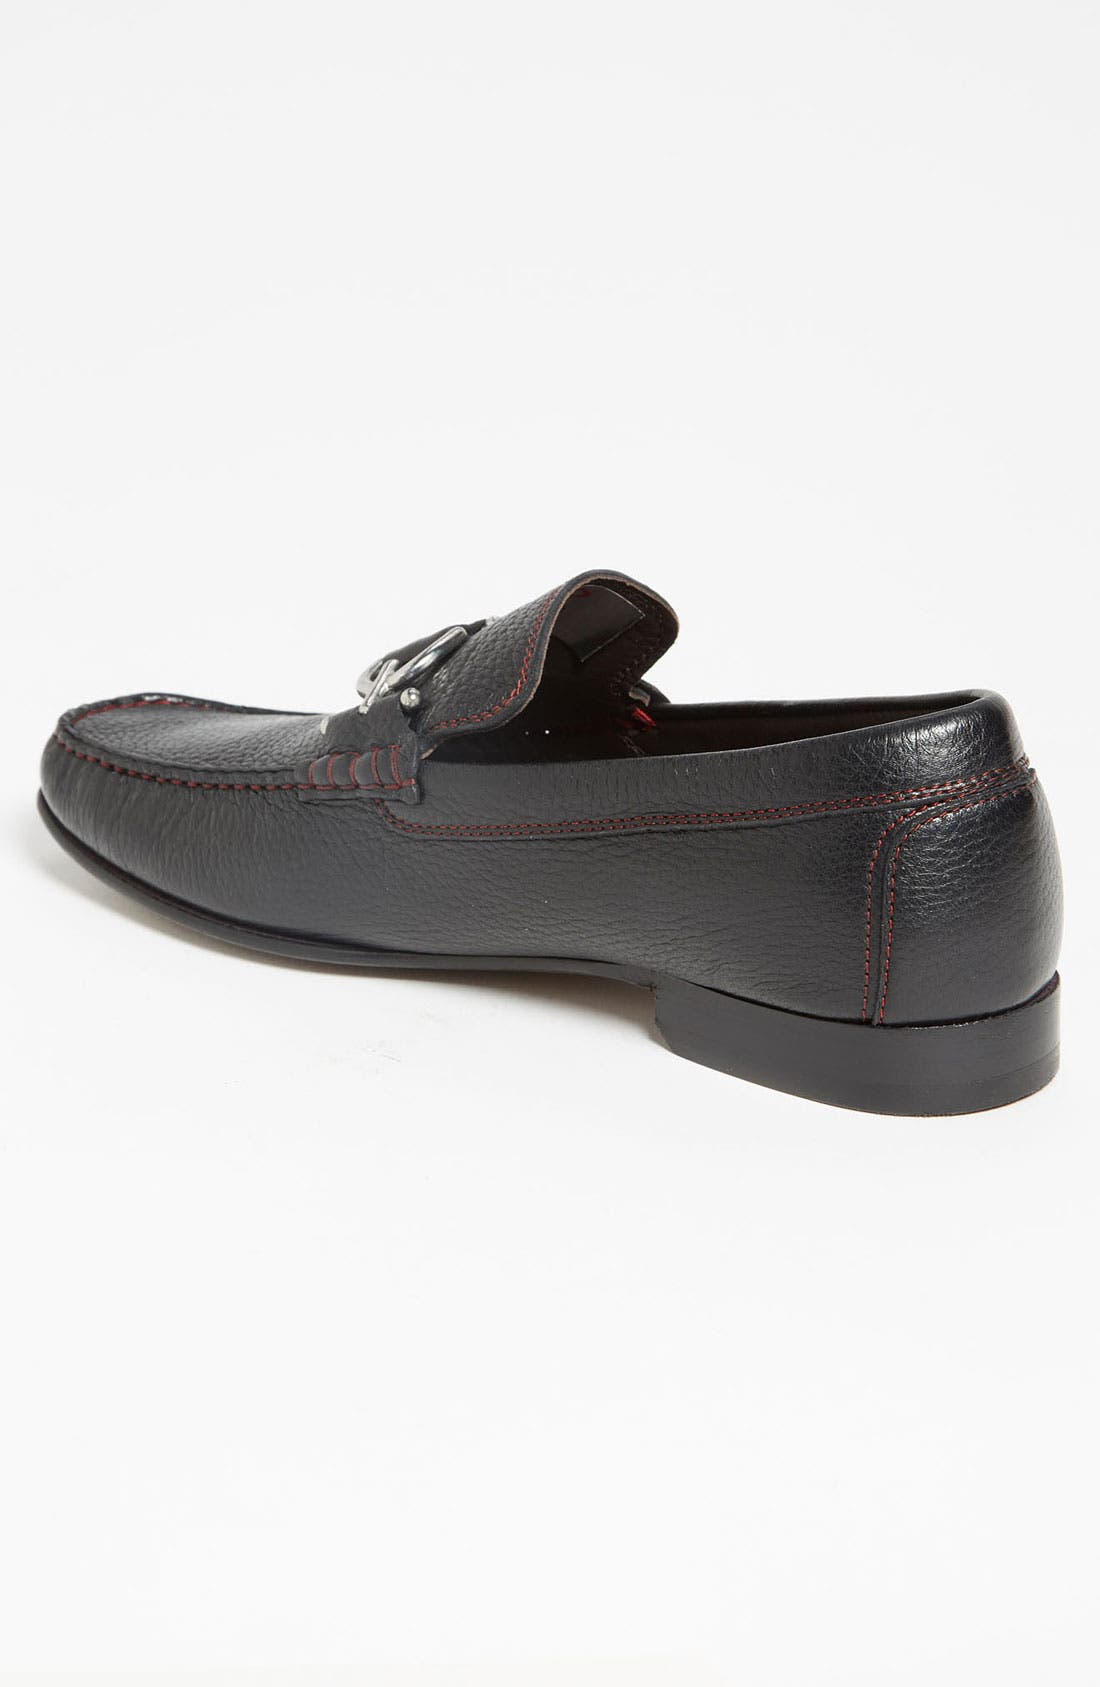 Dacio II Loafer,                             Alternate thumbnail 4, color,                             BLACK/ BLACK LEATHER